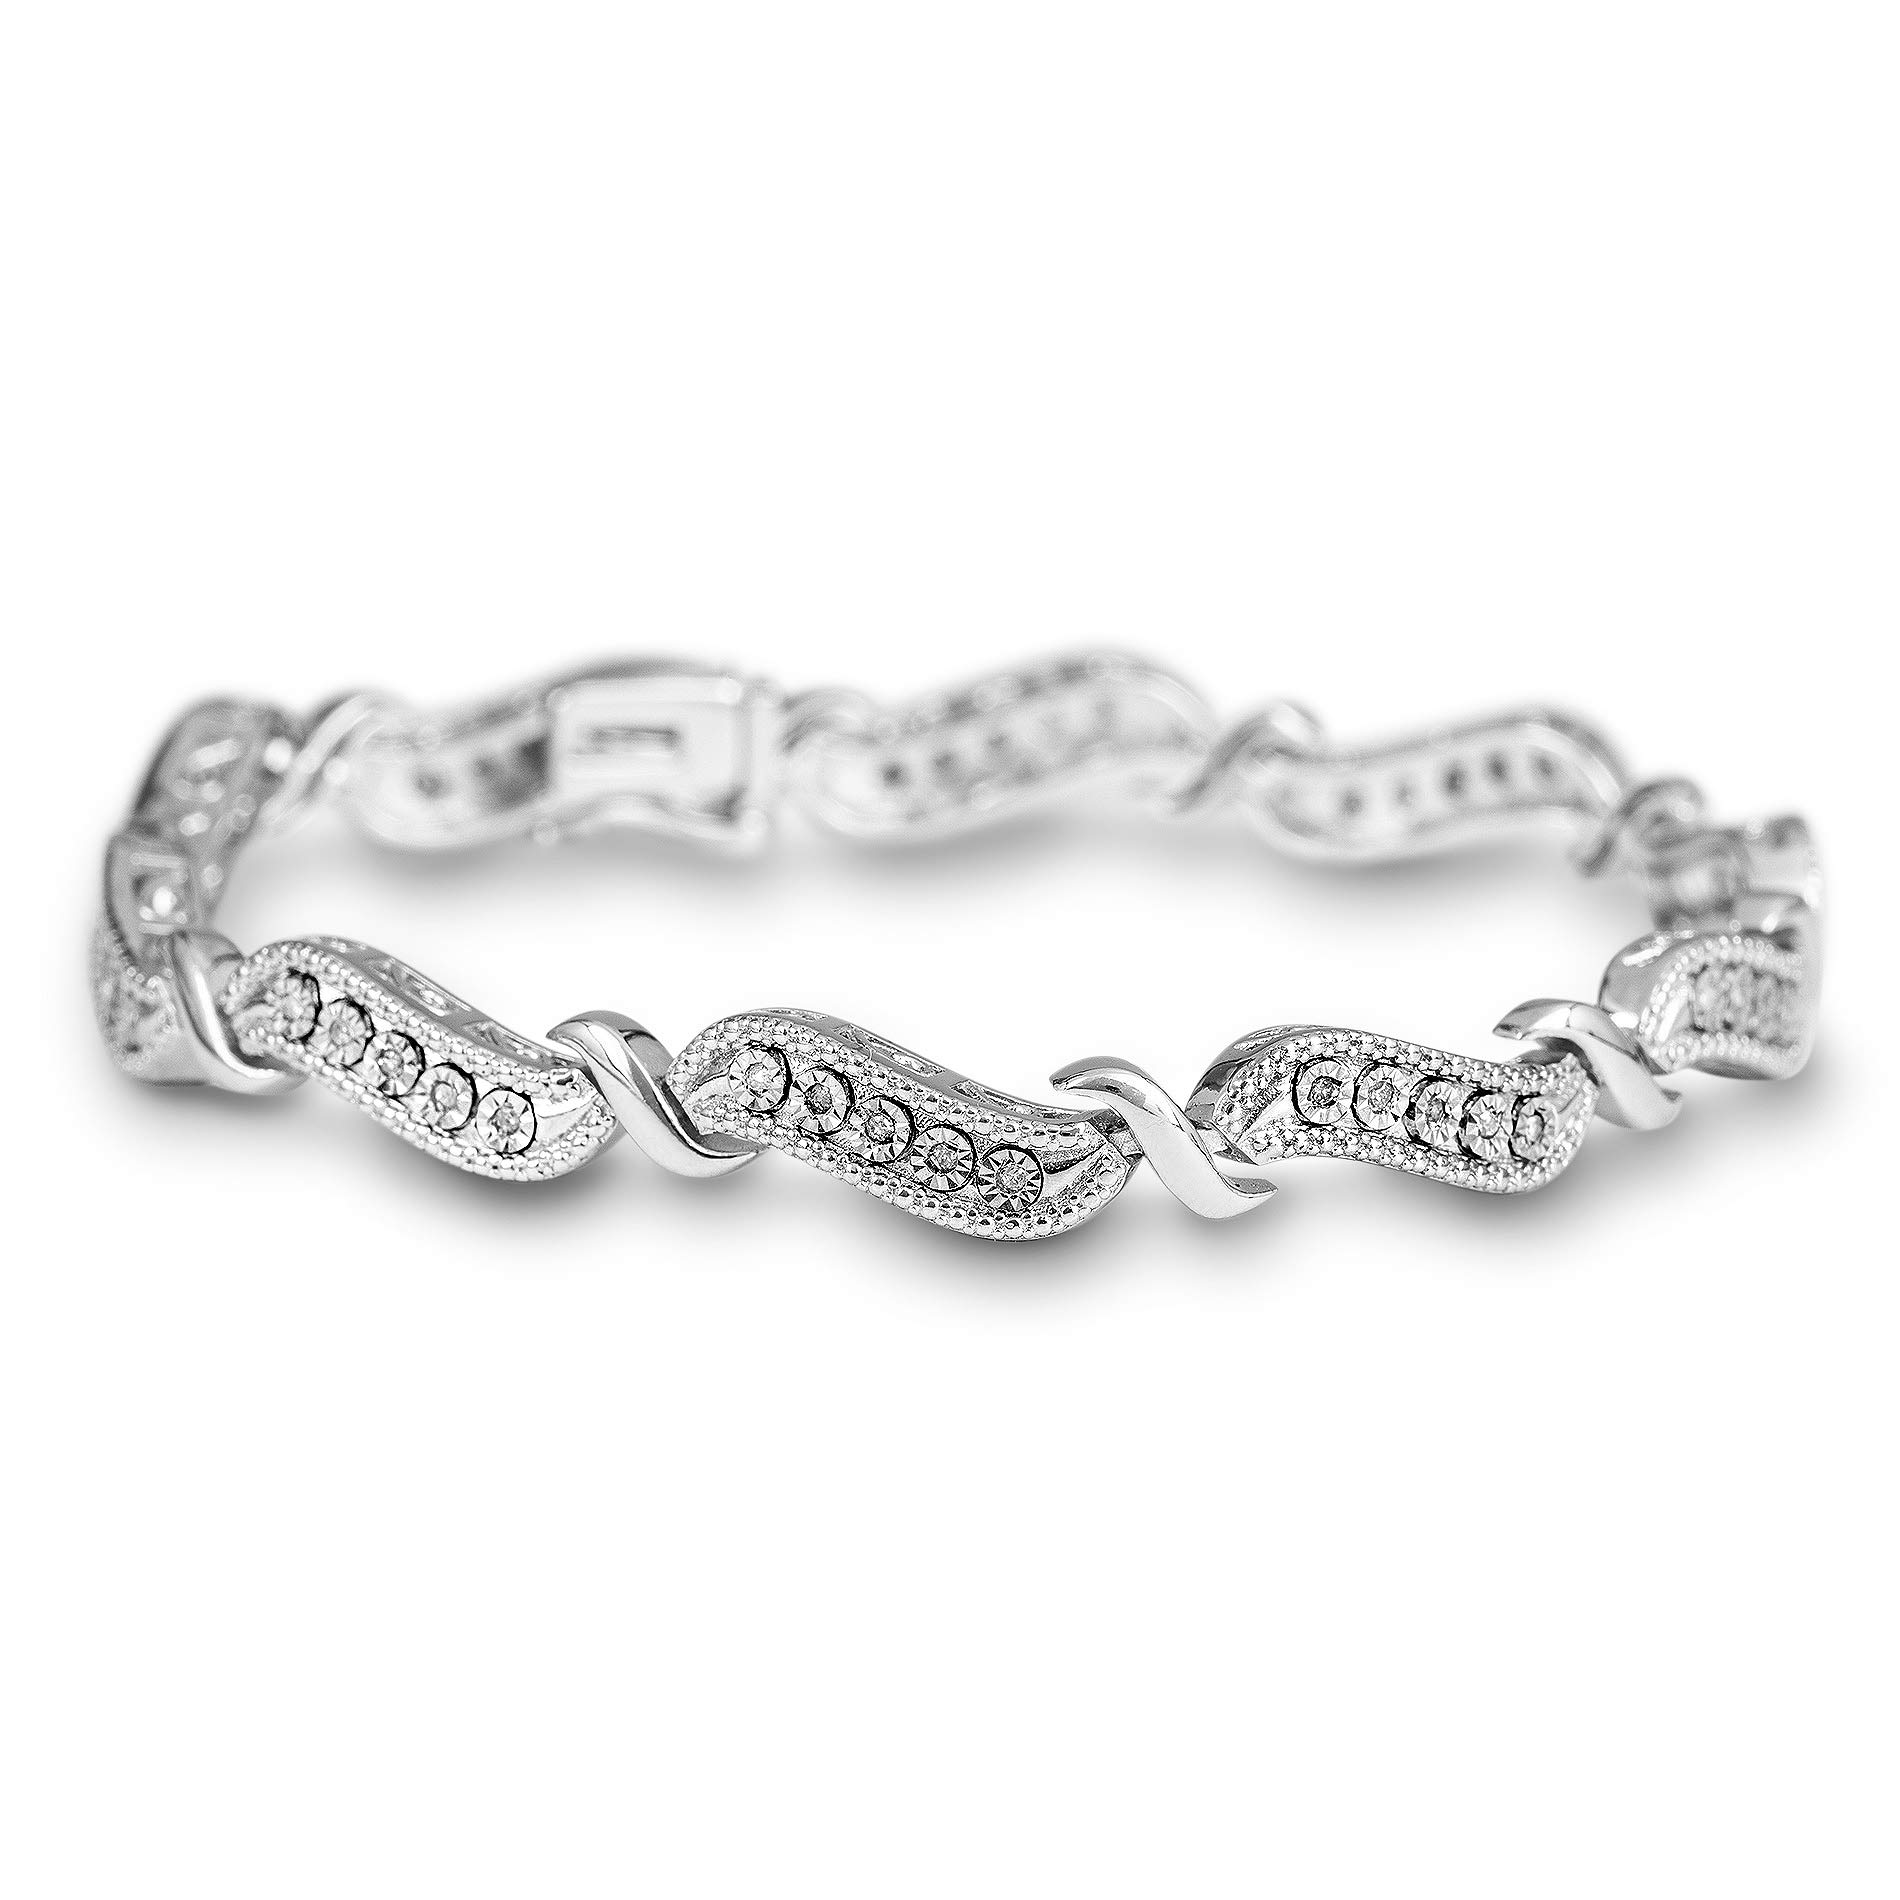 Devin Rose Rhodium Plated Sterling Silver Curved 1/4 Cttw Diamond Tennis Bracelet for Women ( IJ Color I2 - I3 Clarity)